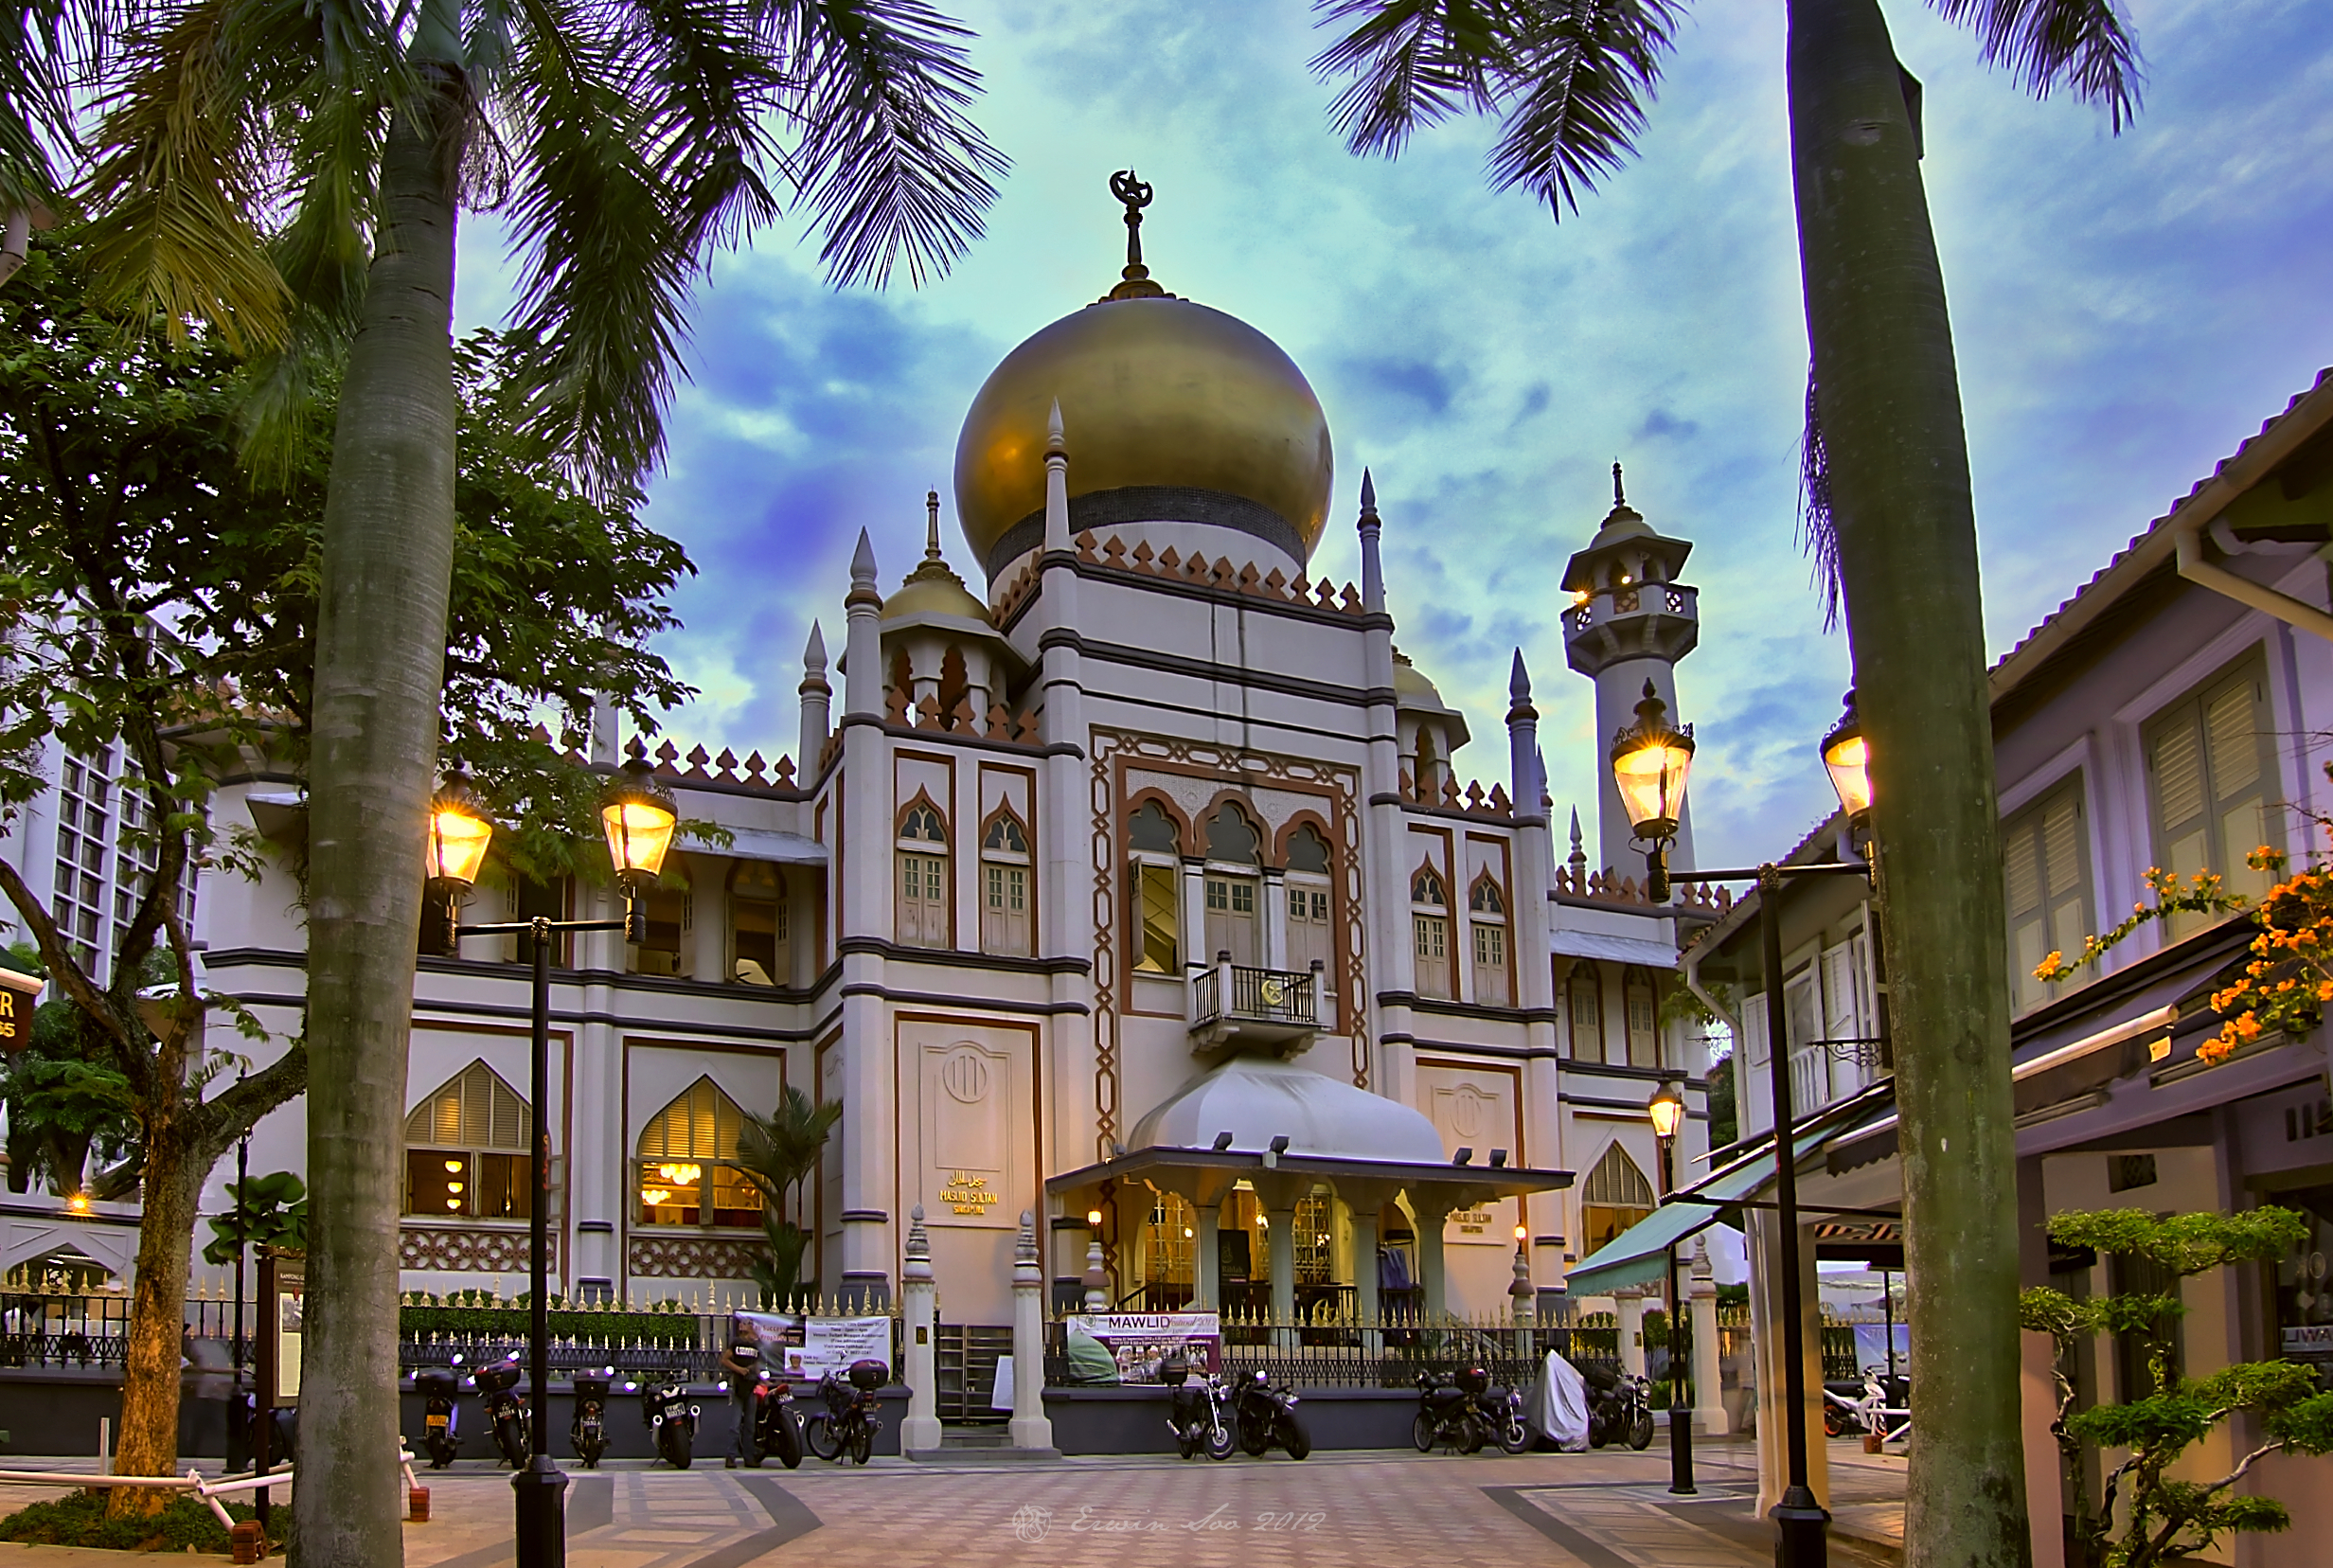 singapore sightseeing places - the Sultan Mosque at Kampong Glam